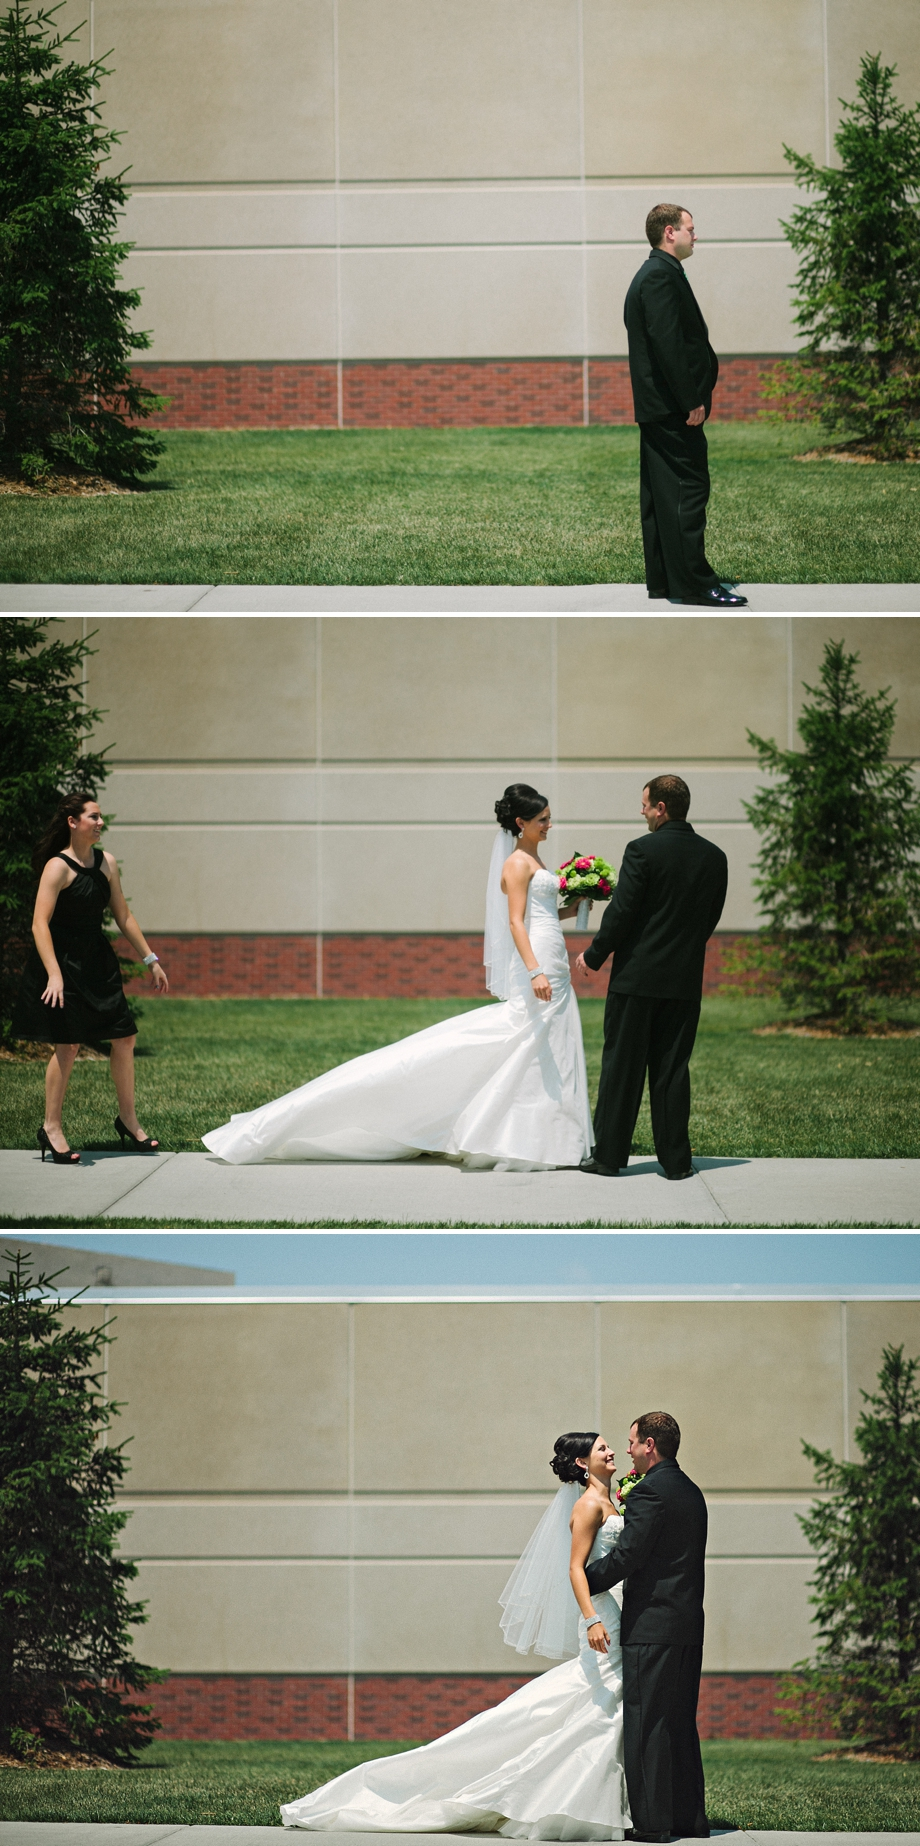 Omaha Wedding Photography - First Look